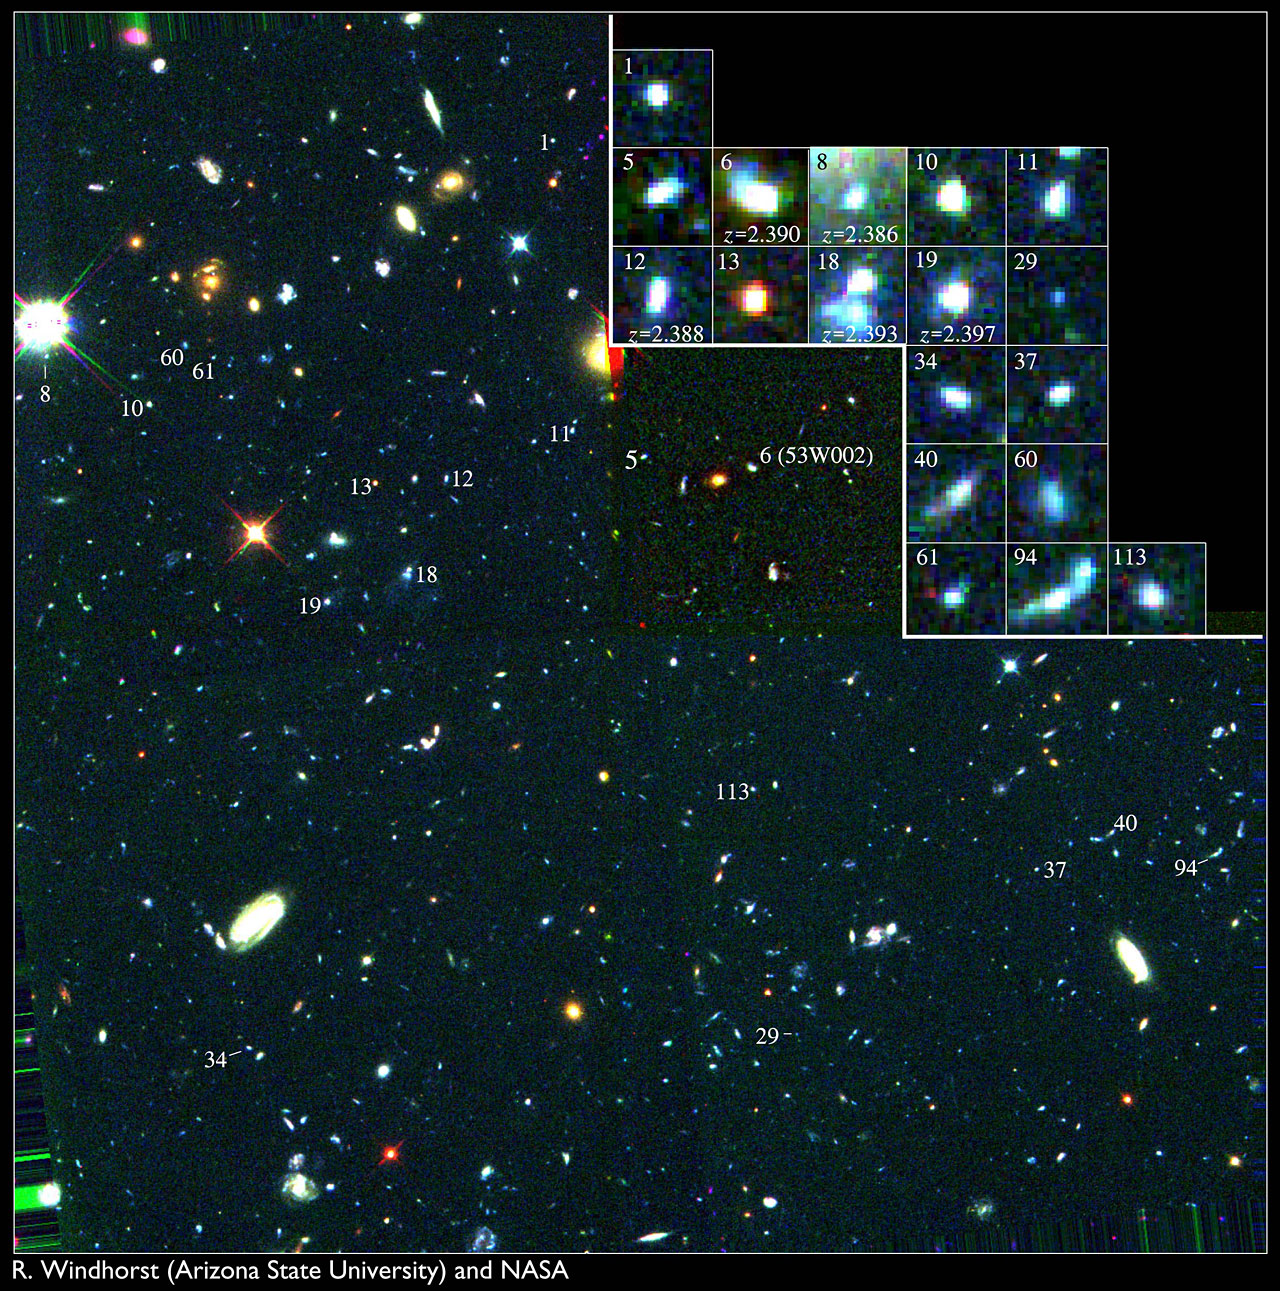 Key to Location of Galactic Building Blocks in Hubble Field